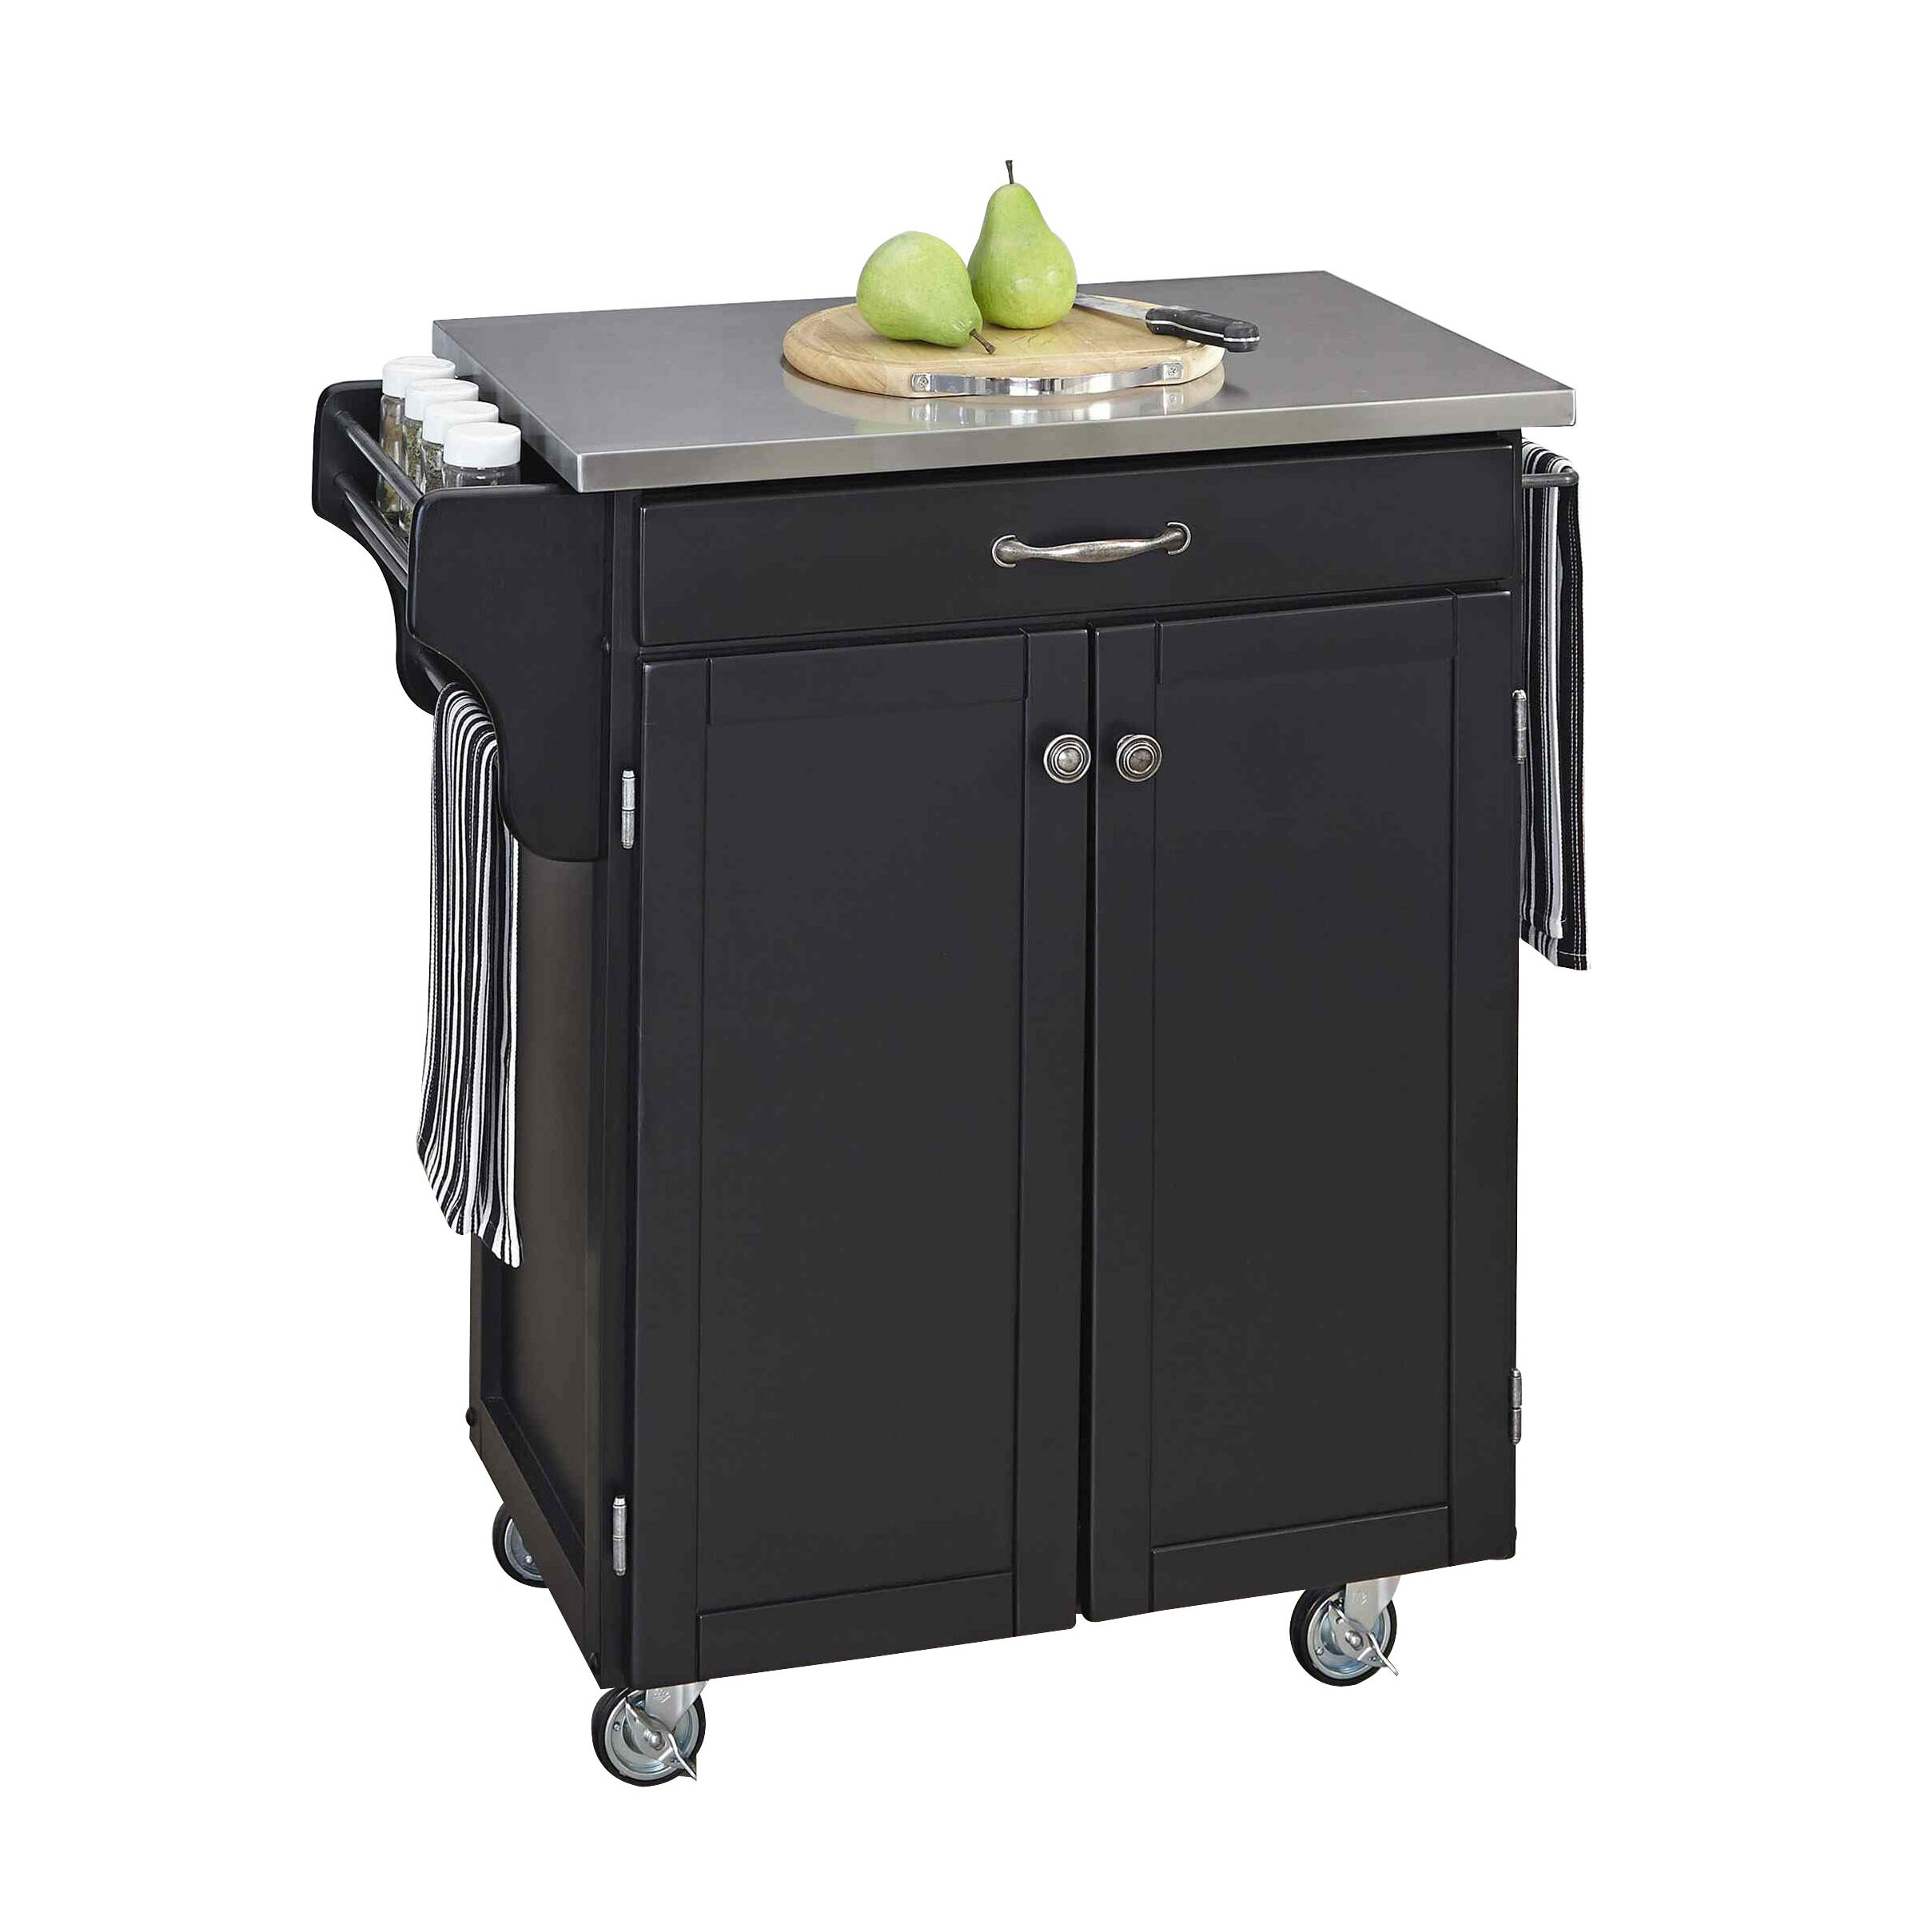 Home Styles Cuisine Kitchen Cart With Stainless Steel Top Reviews Wayfair